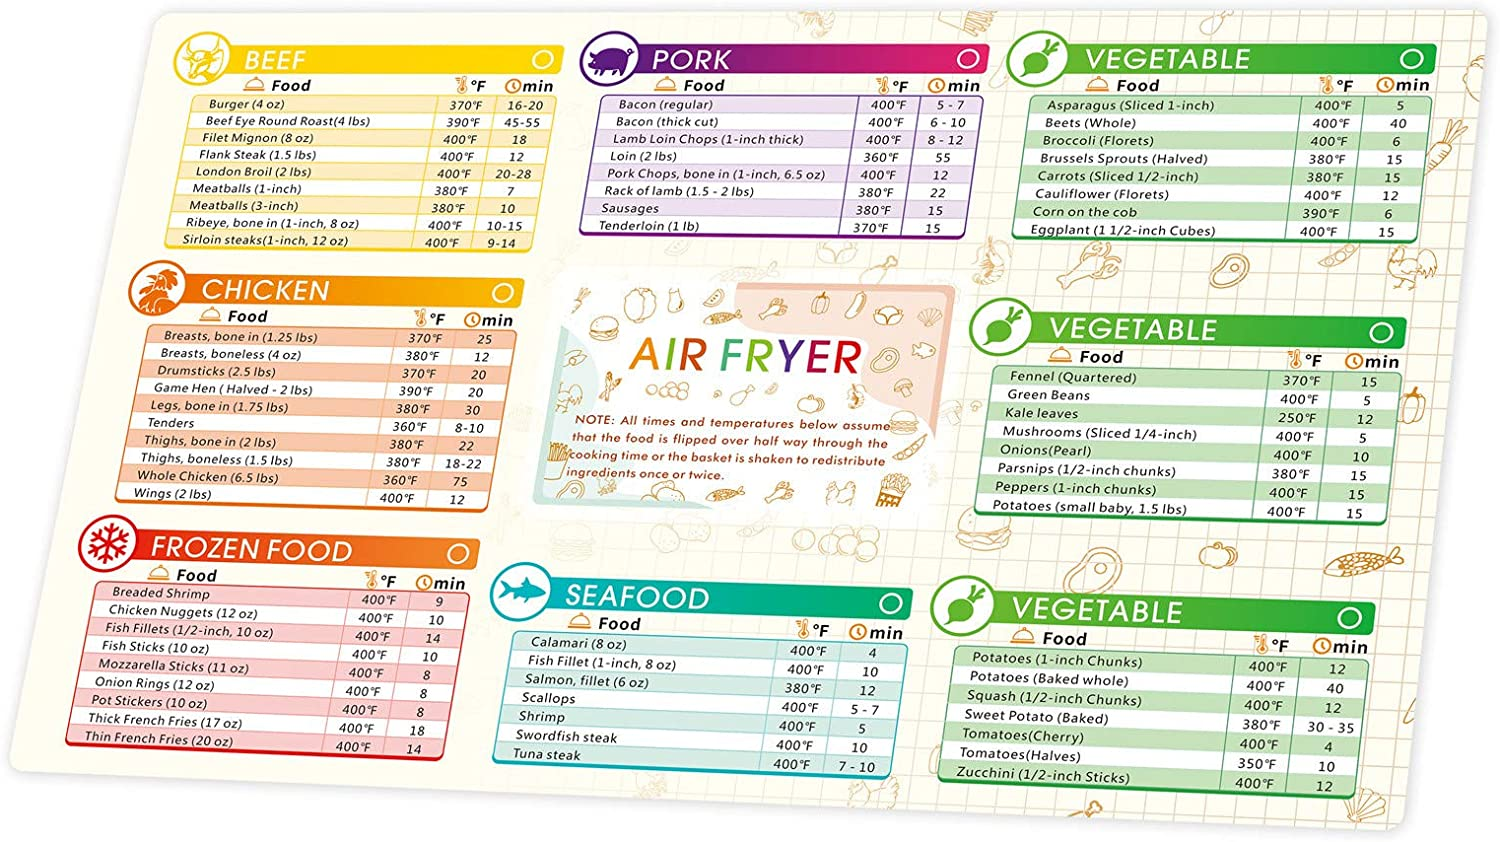 Foxany Air Fryer Cheat Sheet, Quick Reference Guide Magnets, Refrigerator Magnets for Cooking Times and Temperatures, Air Fryer Accessories Cookbook 10.4 x 6.5 inch